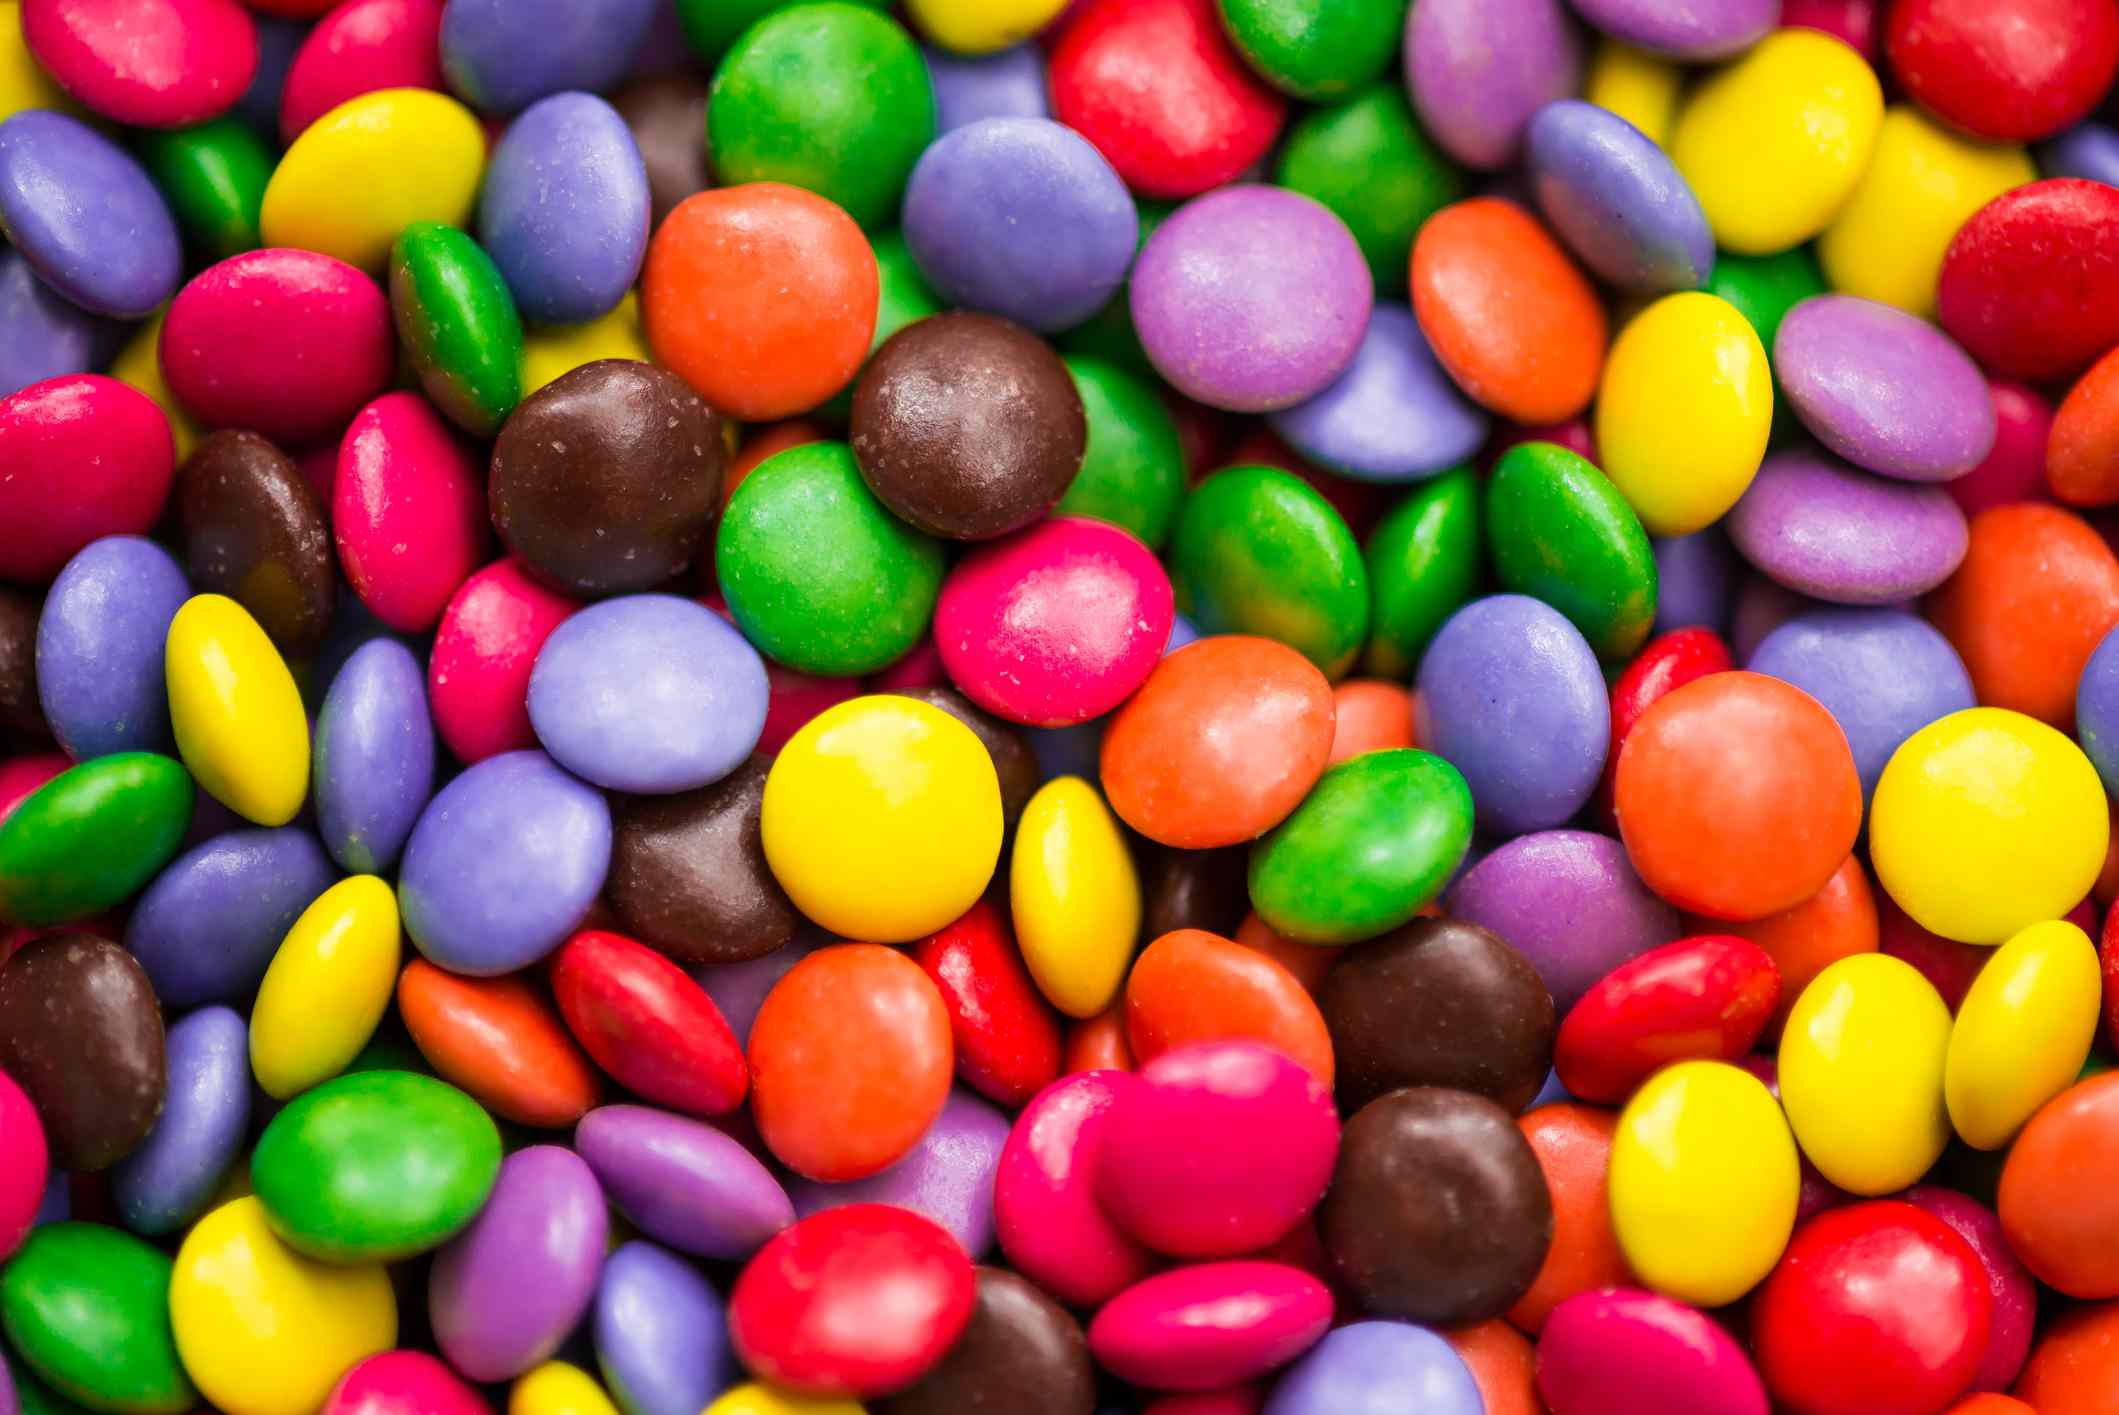 Close-up of multicolored candies